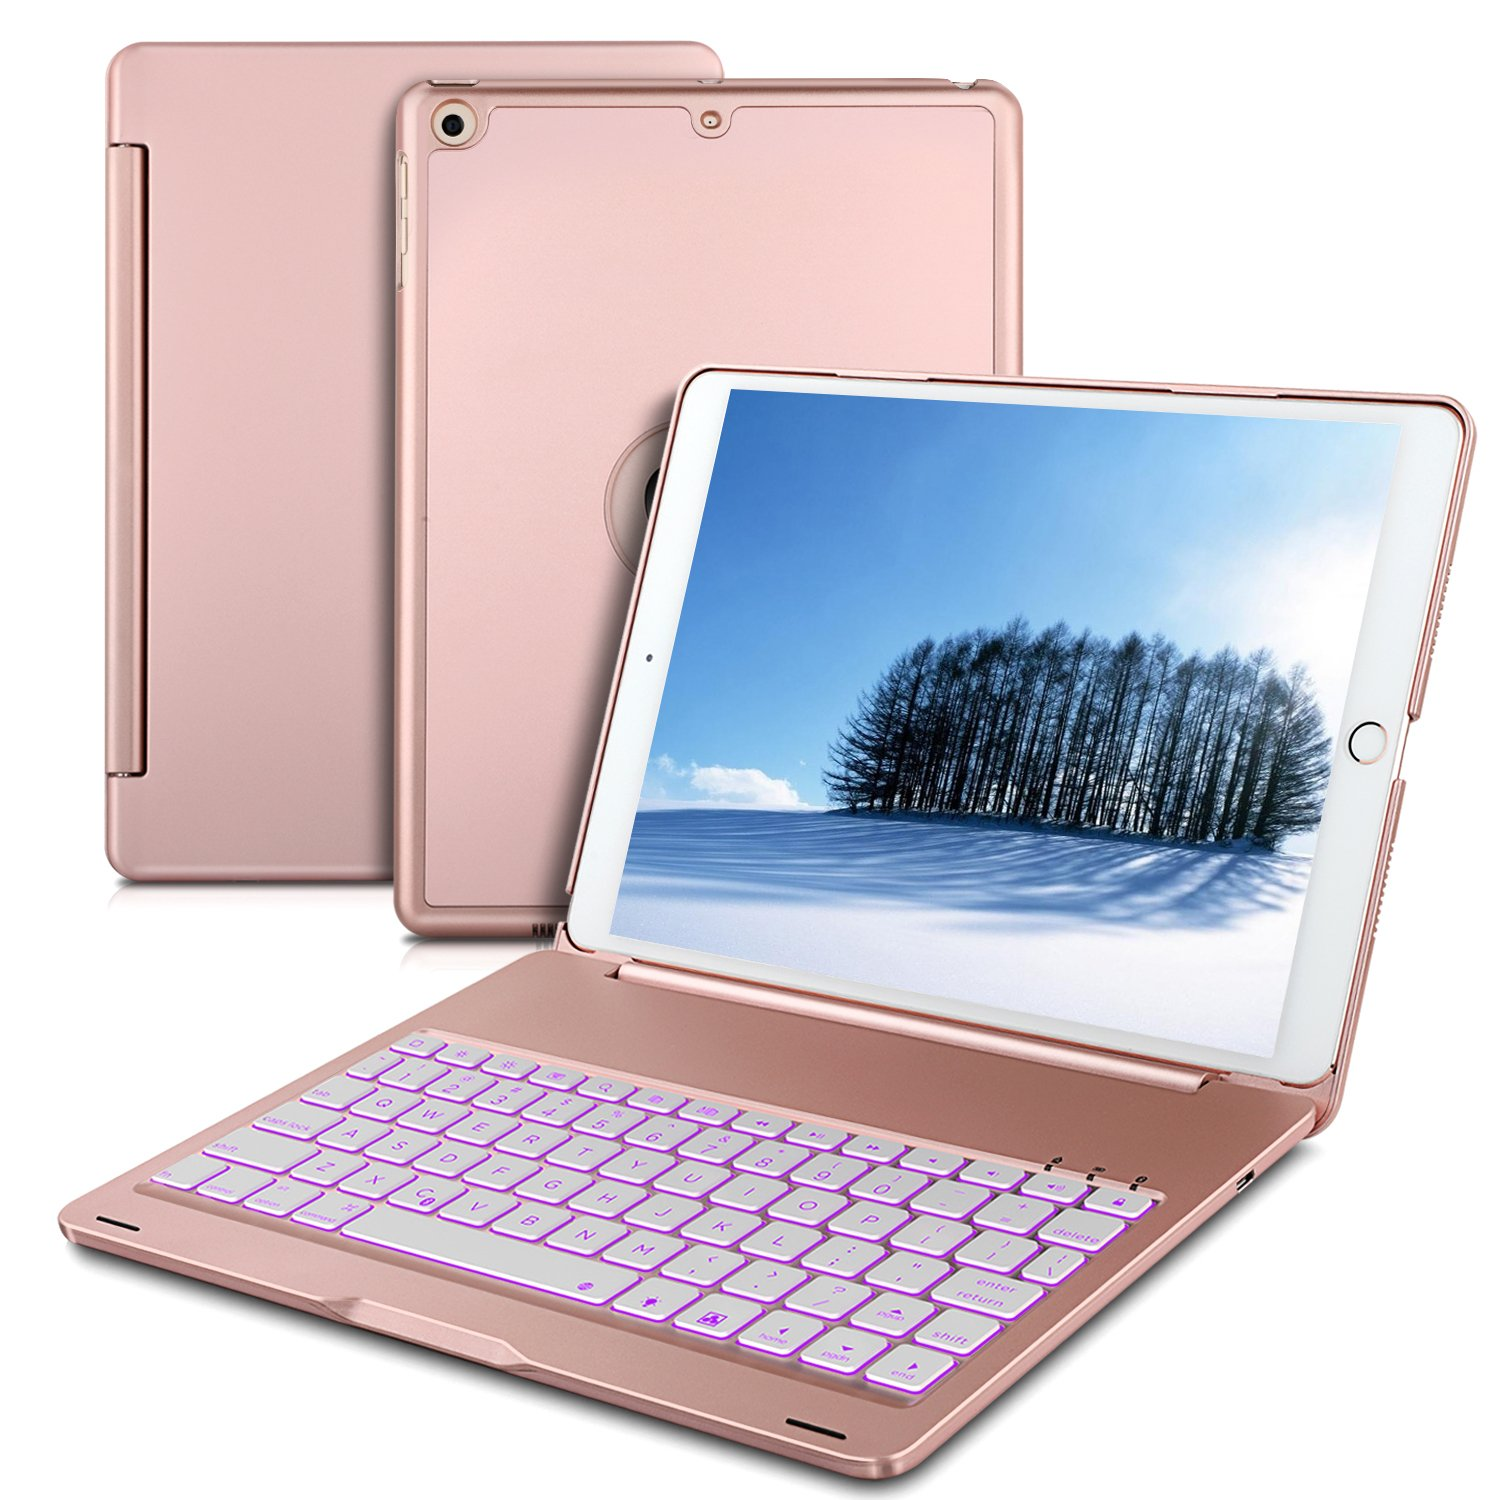 IVSO iPad Pro 10.5 Case with Keyboard Ultra-Slim Aluminum Auto Sleep/Wake Hard Shell Cover with 7 Led Backlit Colors Wireless Keyboard Case for iPad Pro 10.5 inch 2017 Tablet (Rose Gold)